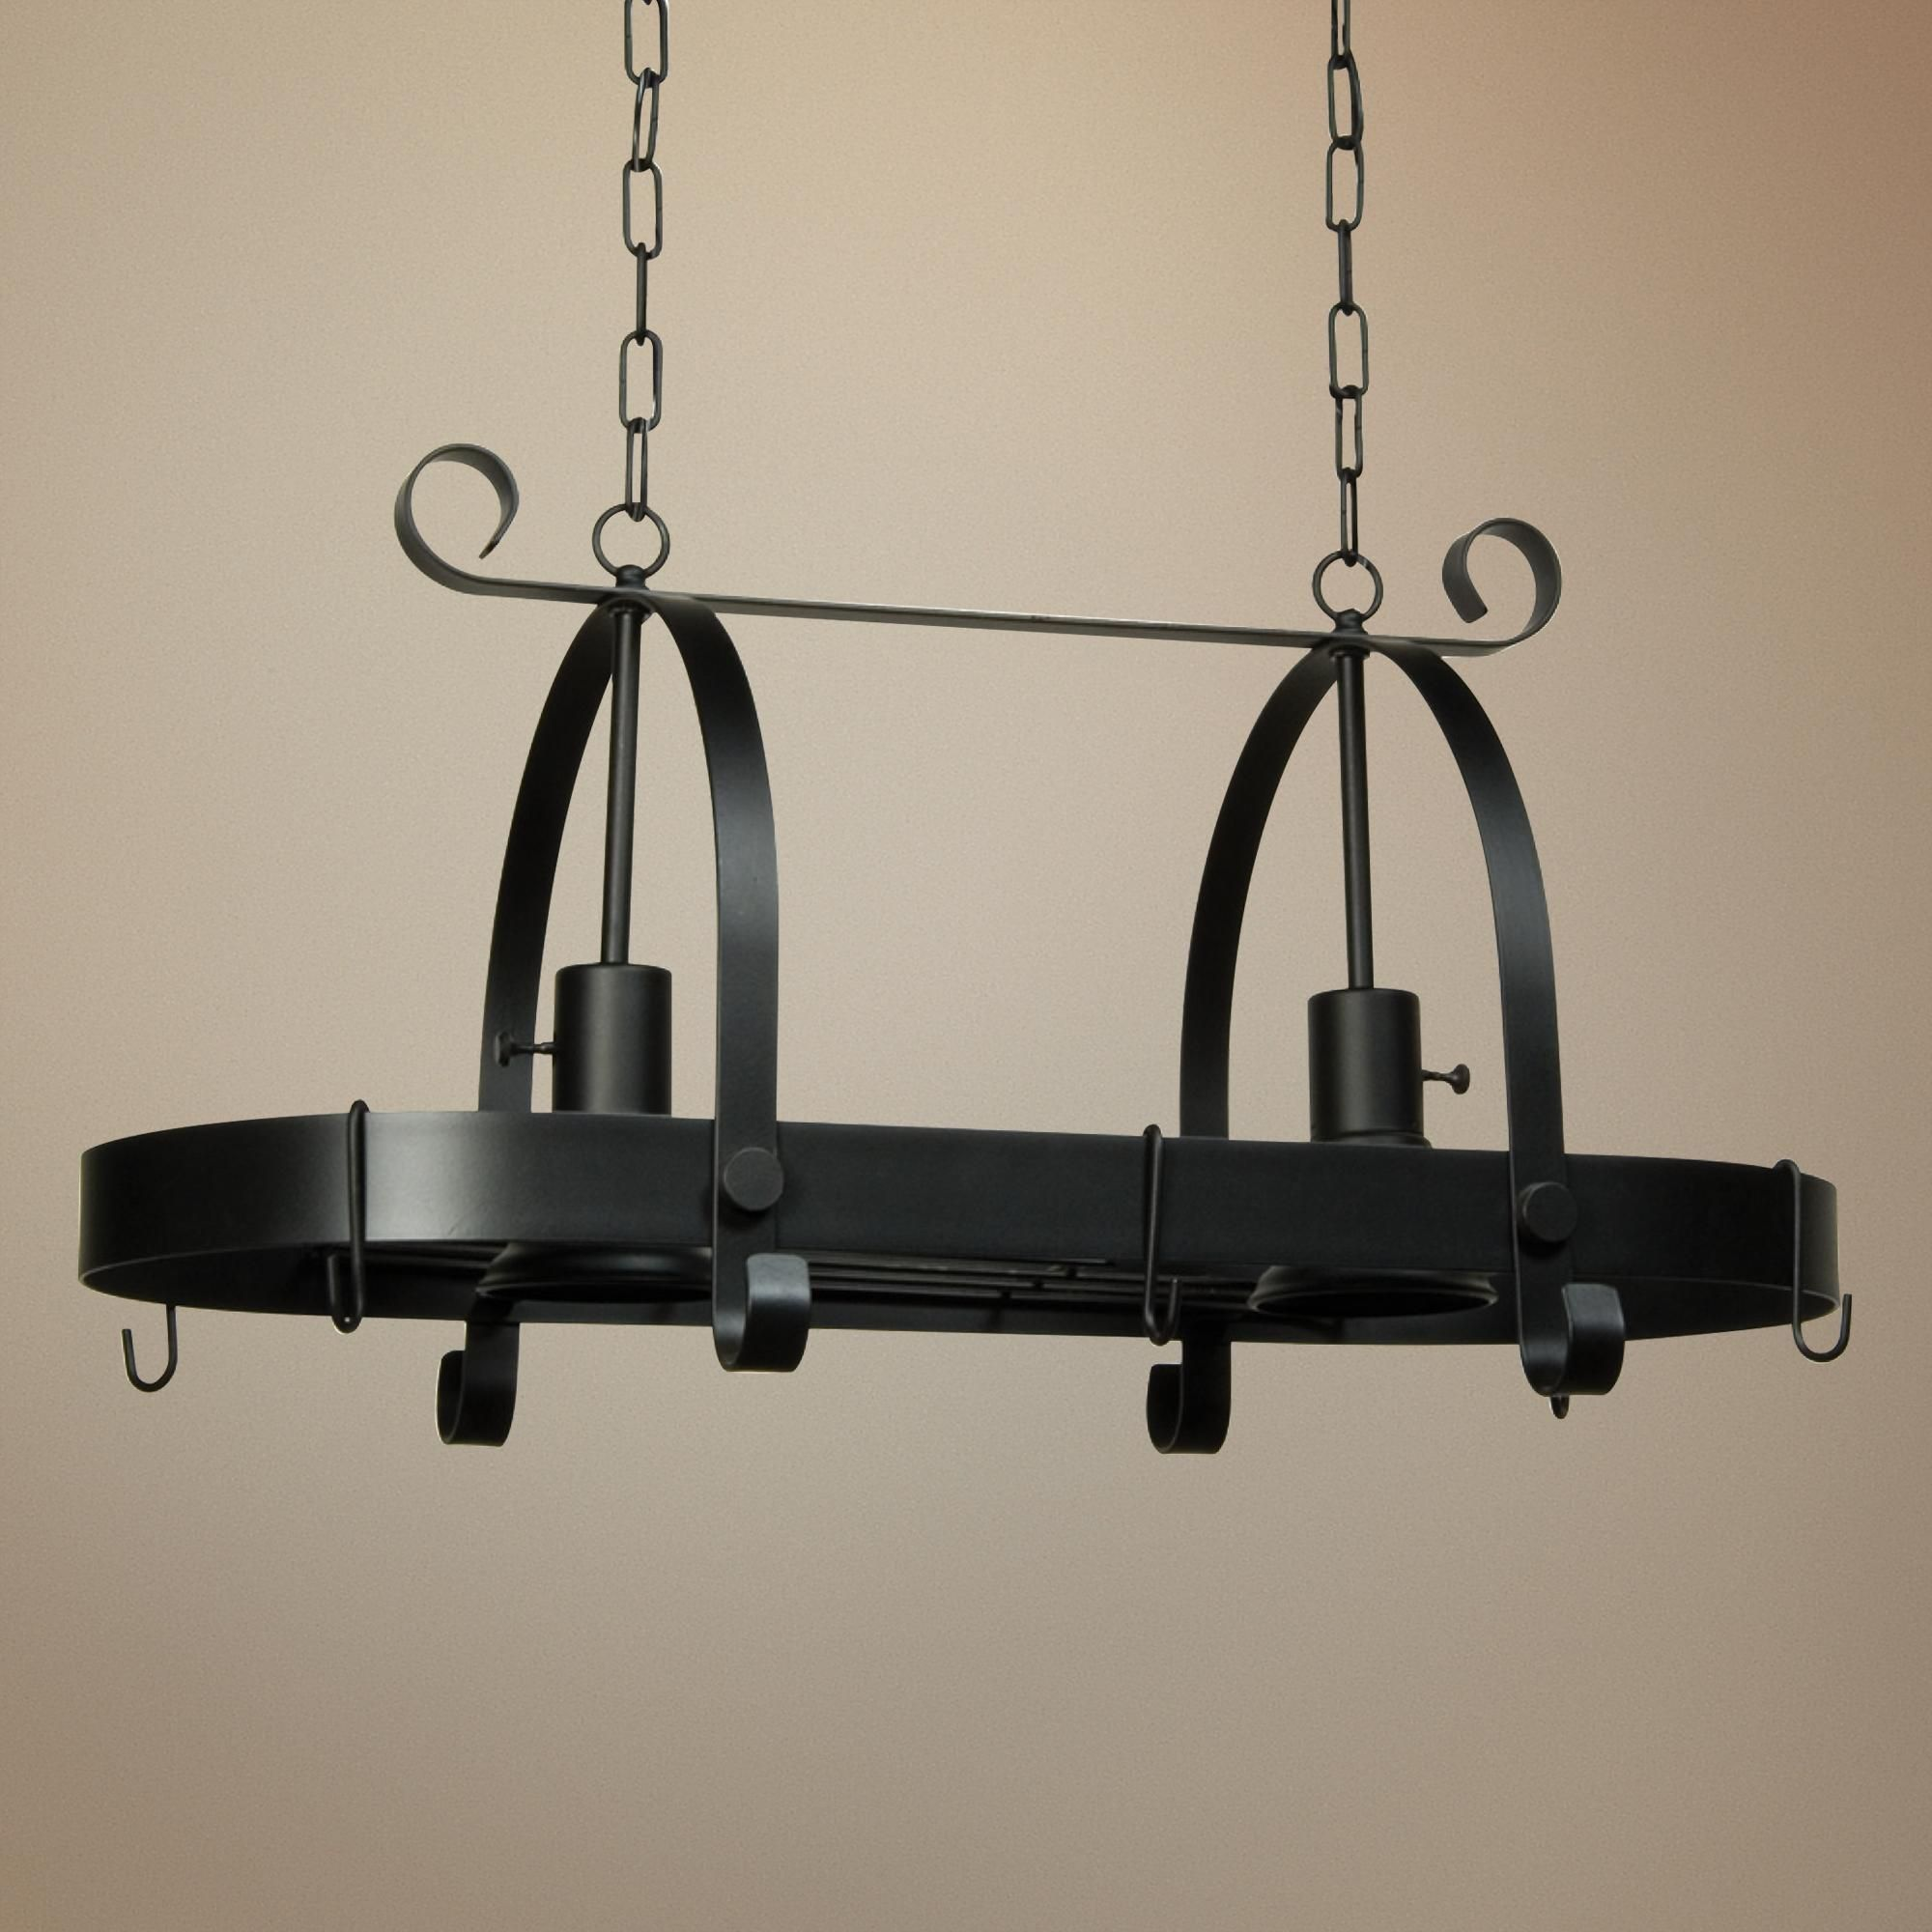 Artcraft Pot Racks 30 Wide Black Rack Chandelier